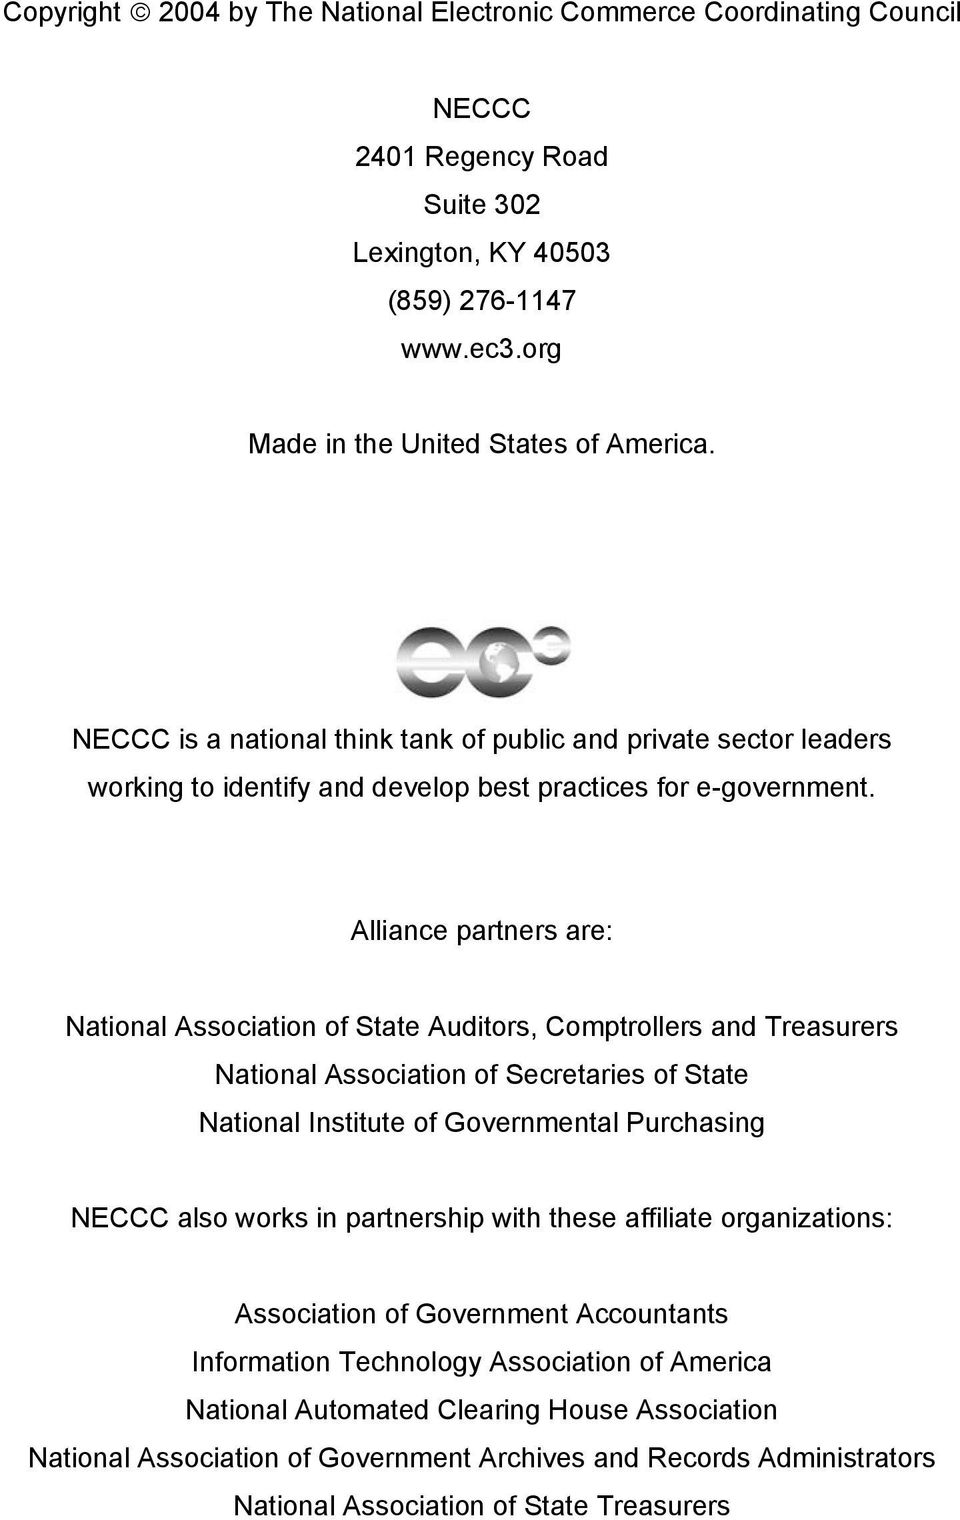 Alliance partners are: National Association of State Auditors, Comptrollers and Treasurers National Association of Secretaries of State National Institute of Governmental Purchasing NECCC also works